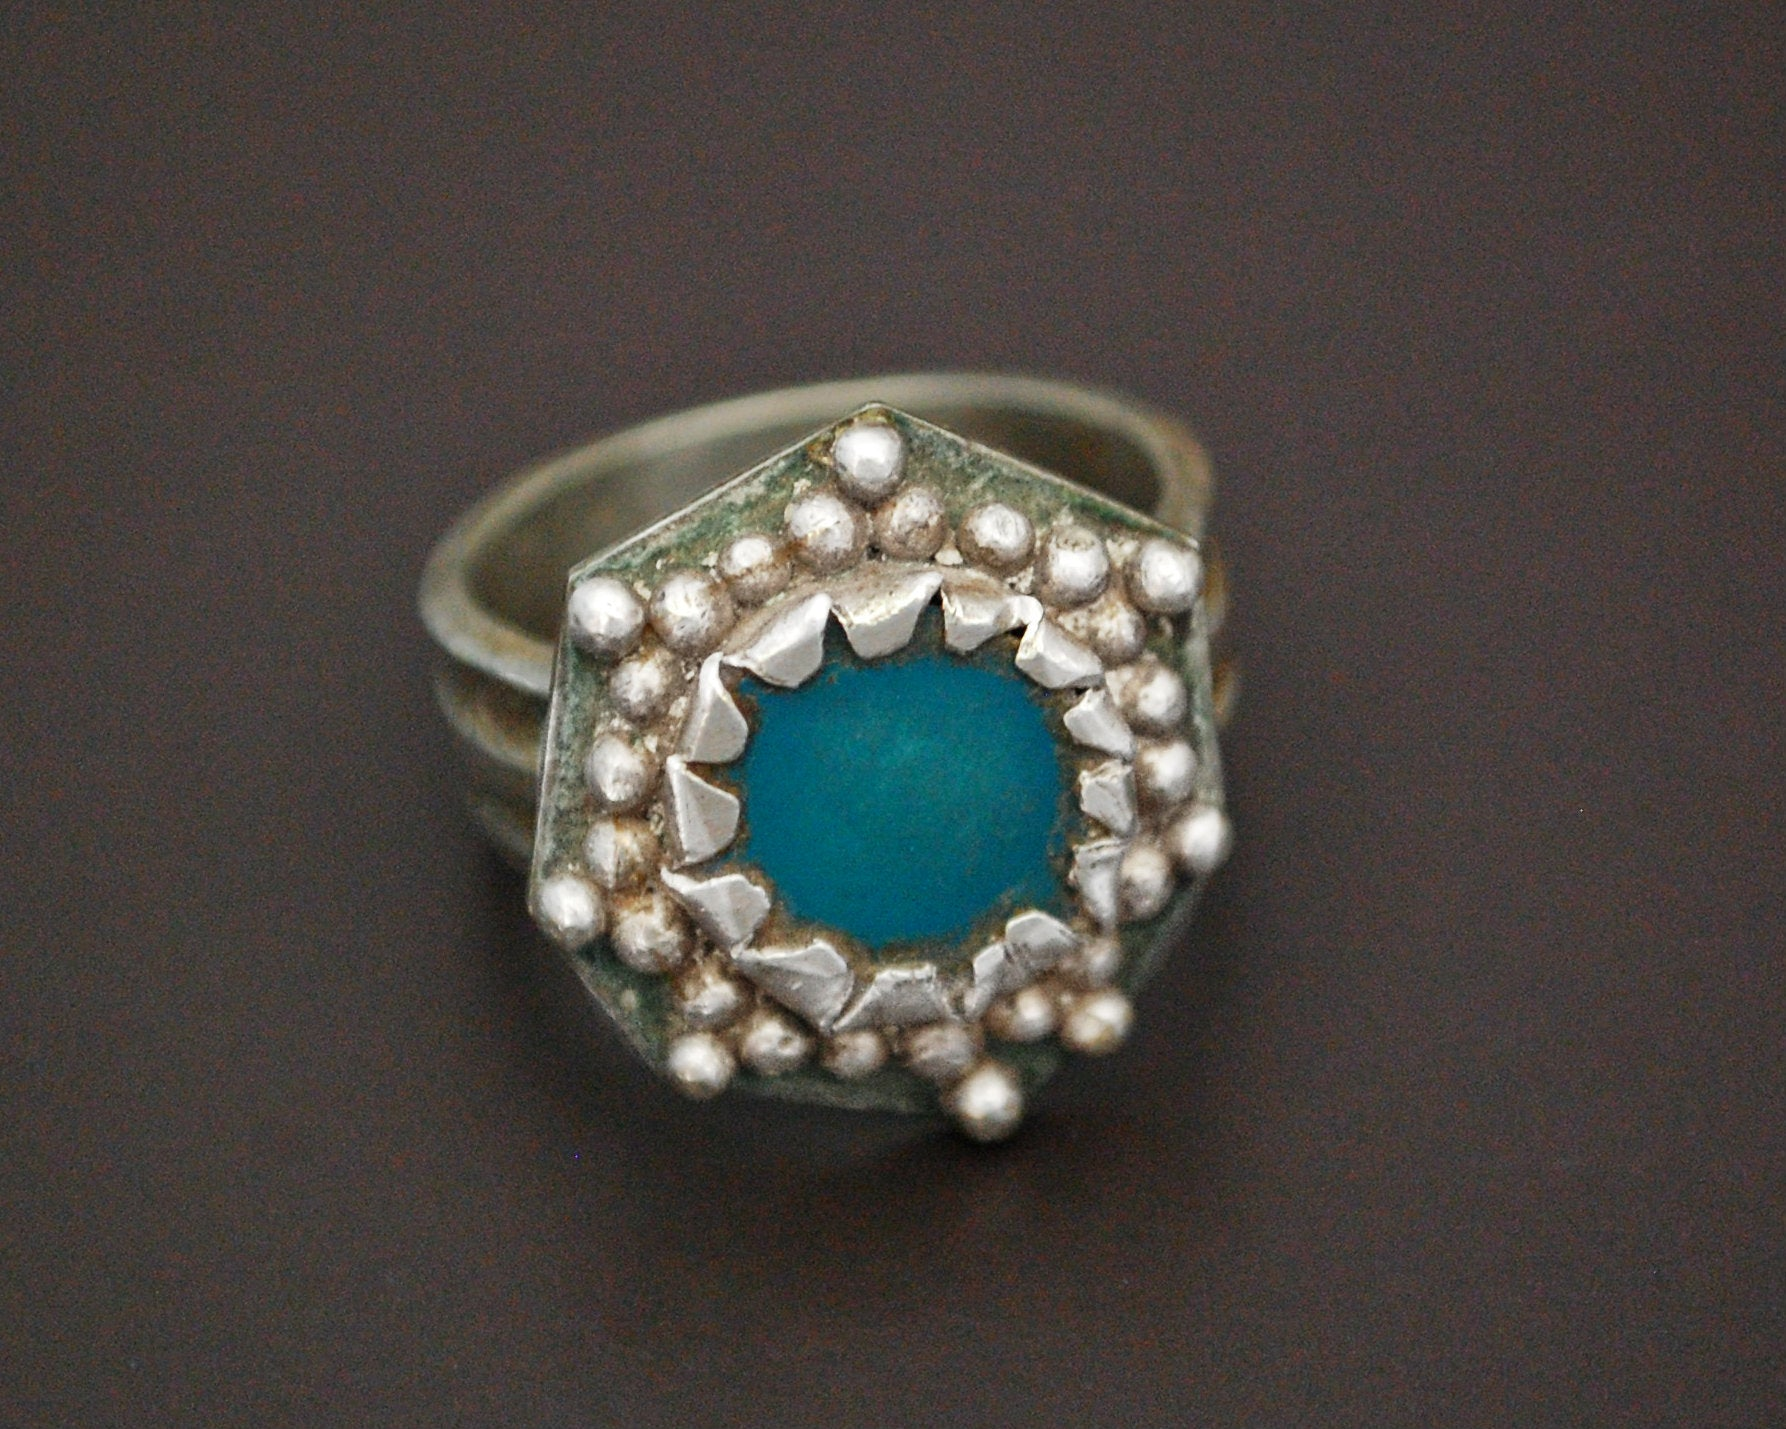 Ethnic Aventurine Ring from Afghanistan - Size 7.5